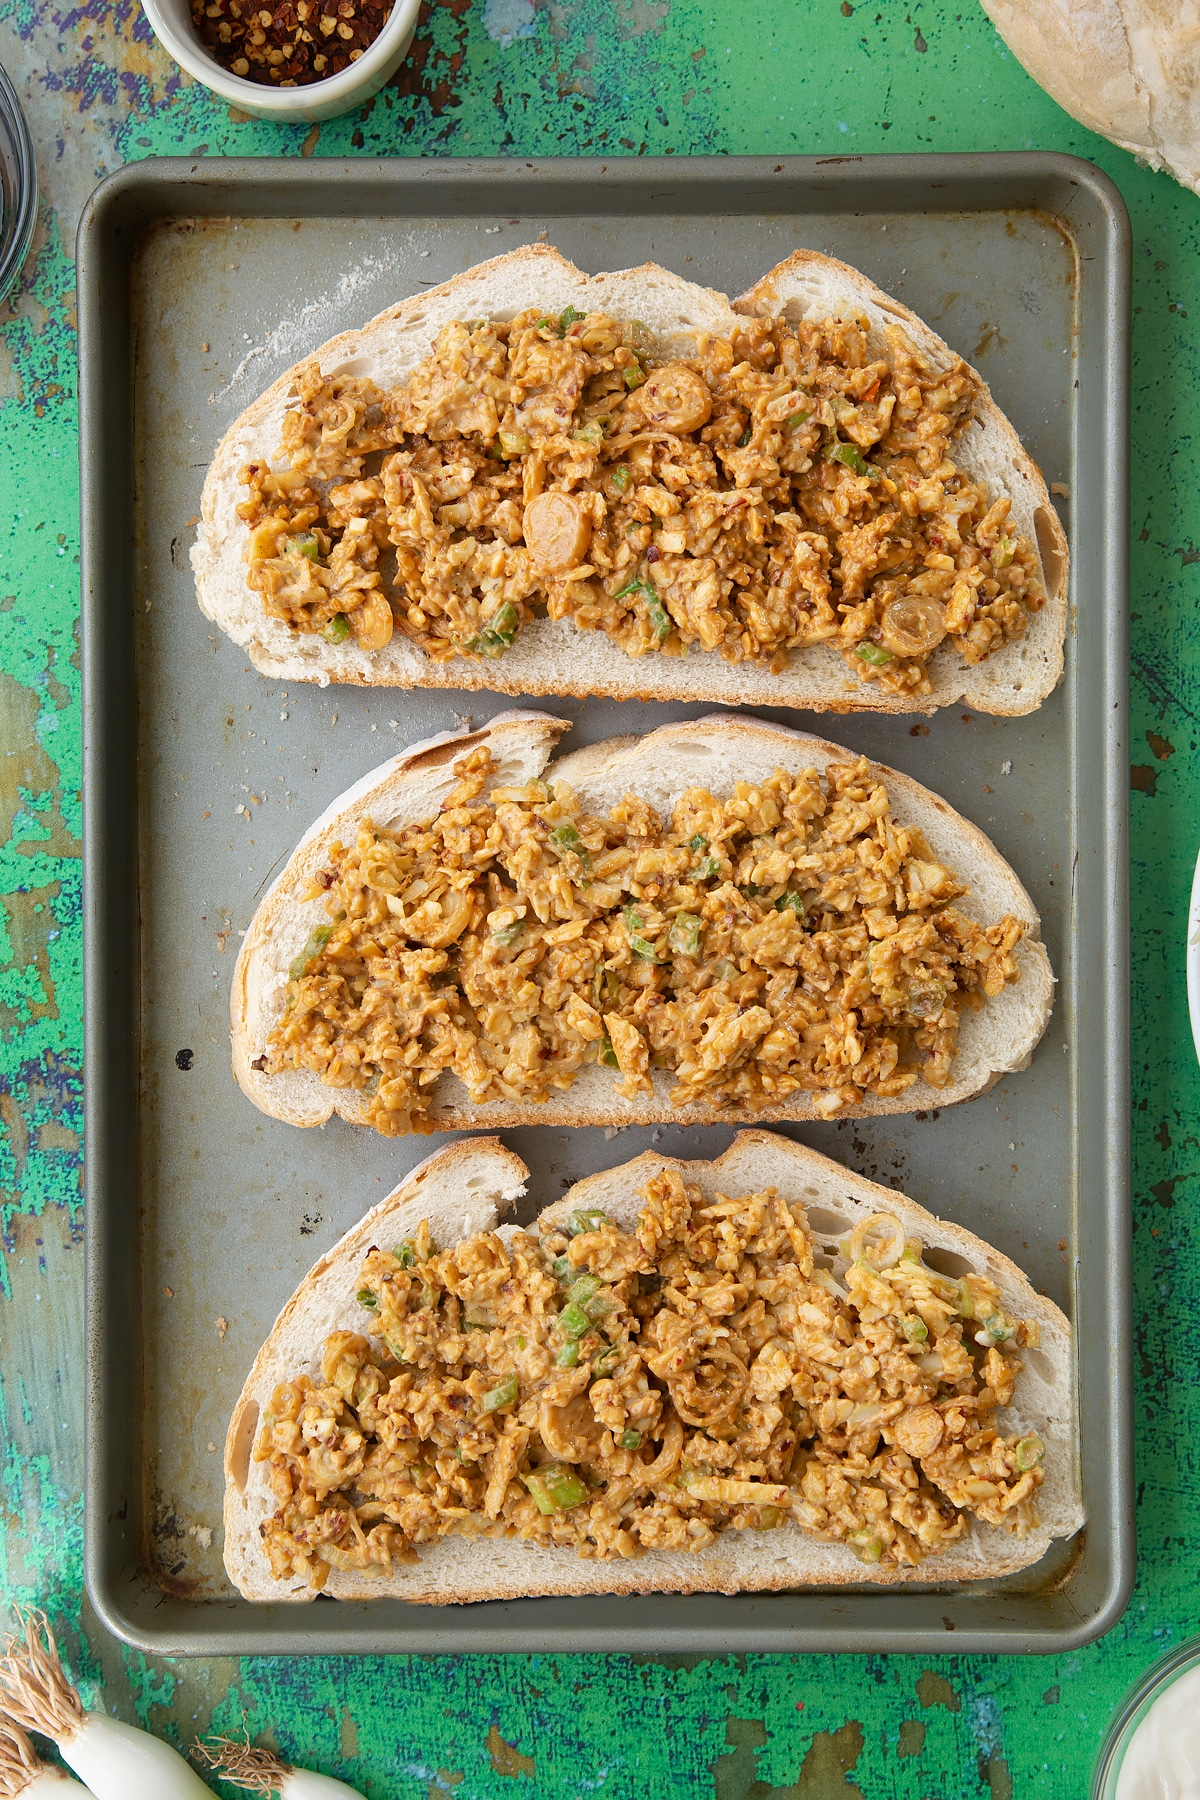 Three large slices of toast on a baking tray, spread with a mix of cheese, mayo and chilli. Ingredients to make chilli cheese toast surround the tray.